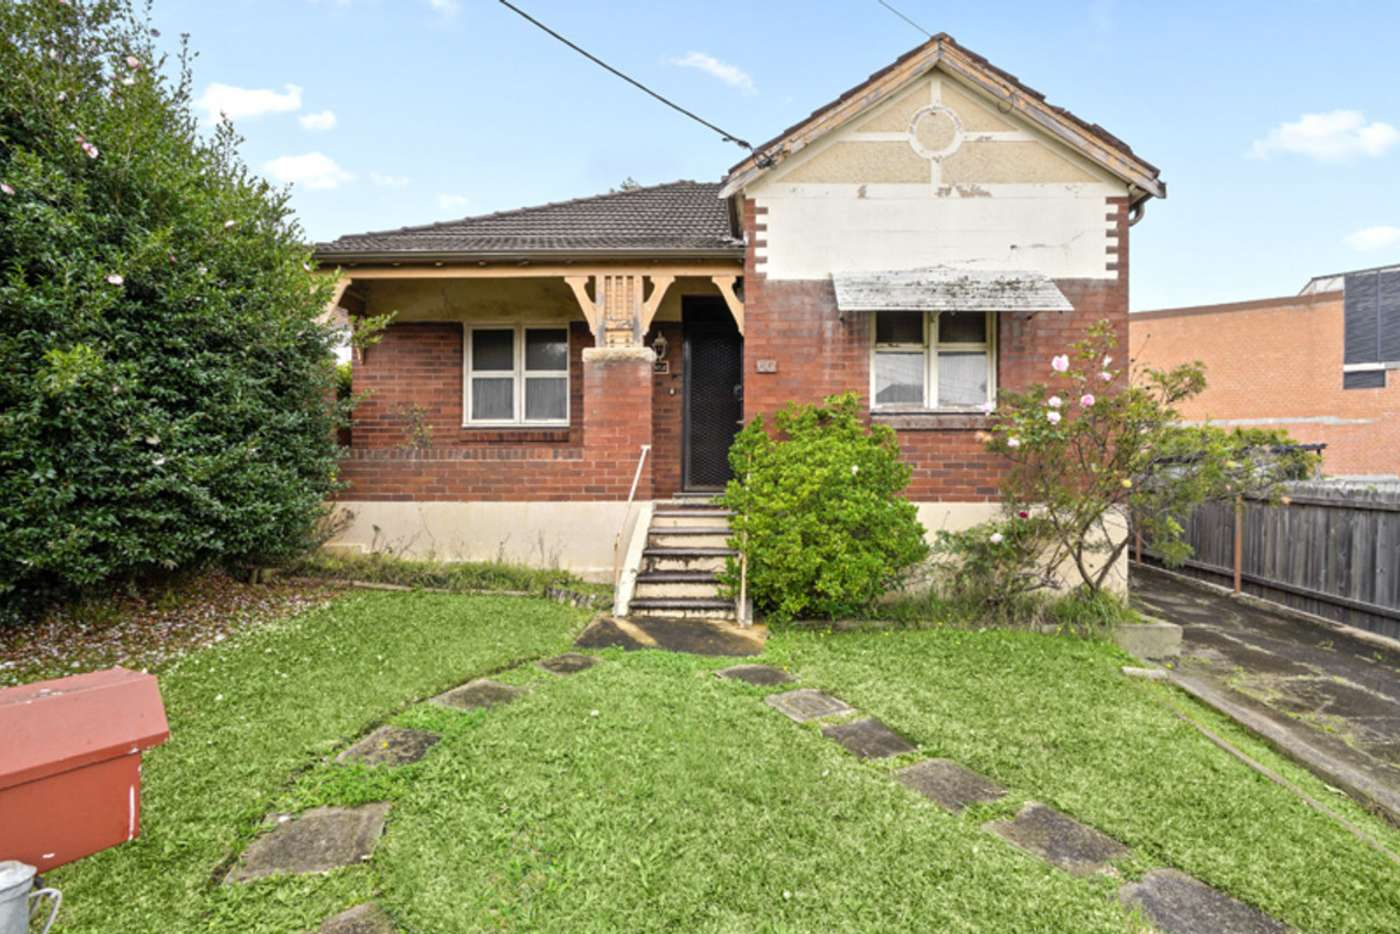 Main view of Homely house listing, 60 Beaufort Street, Croydon Park NSW 2133